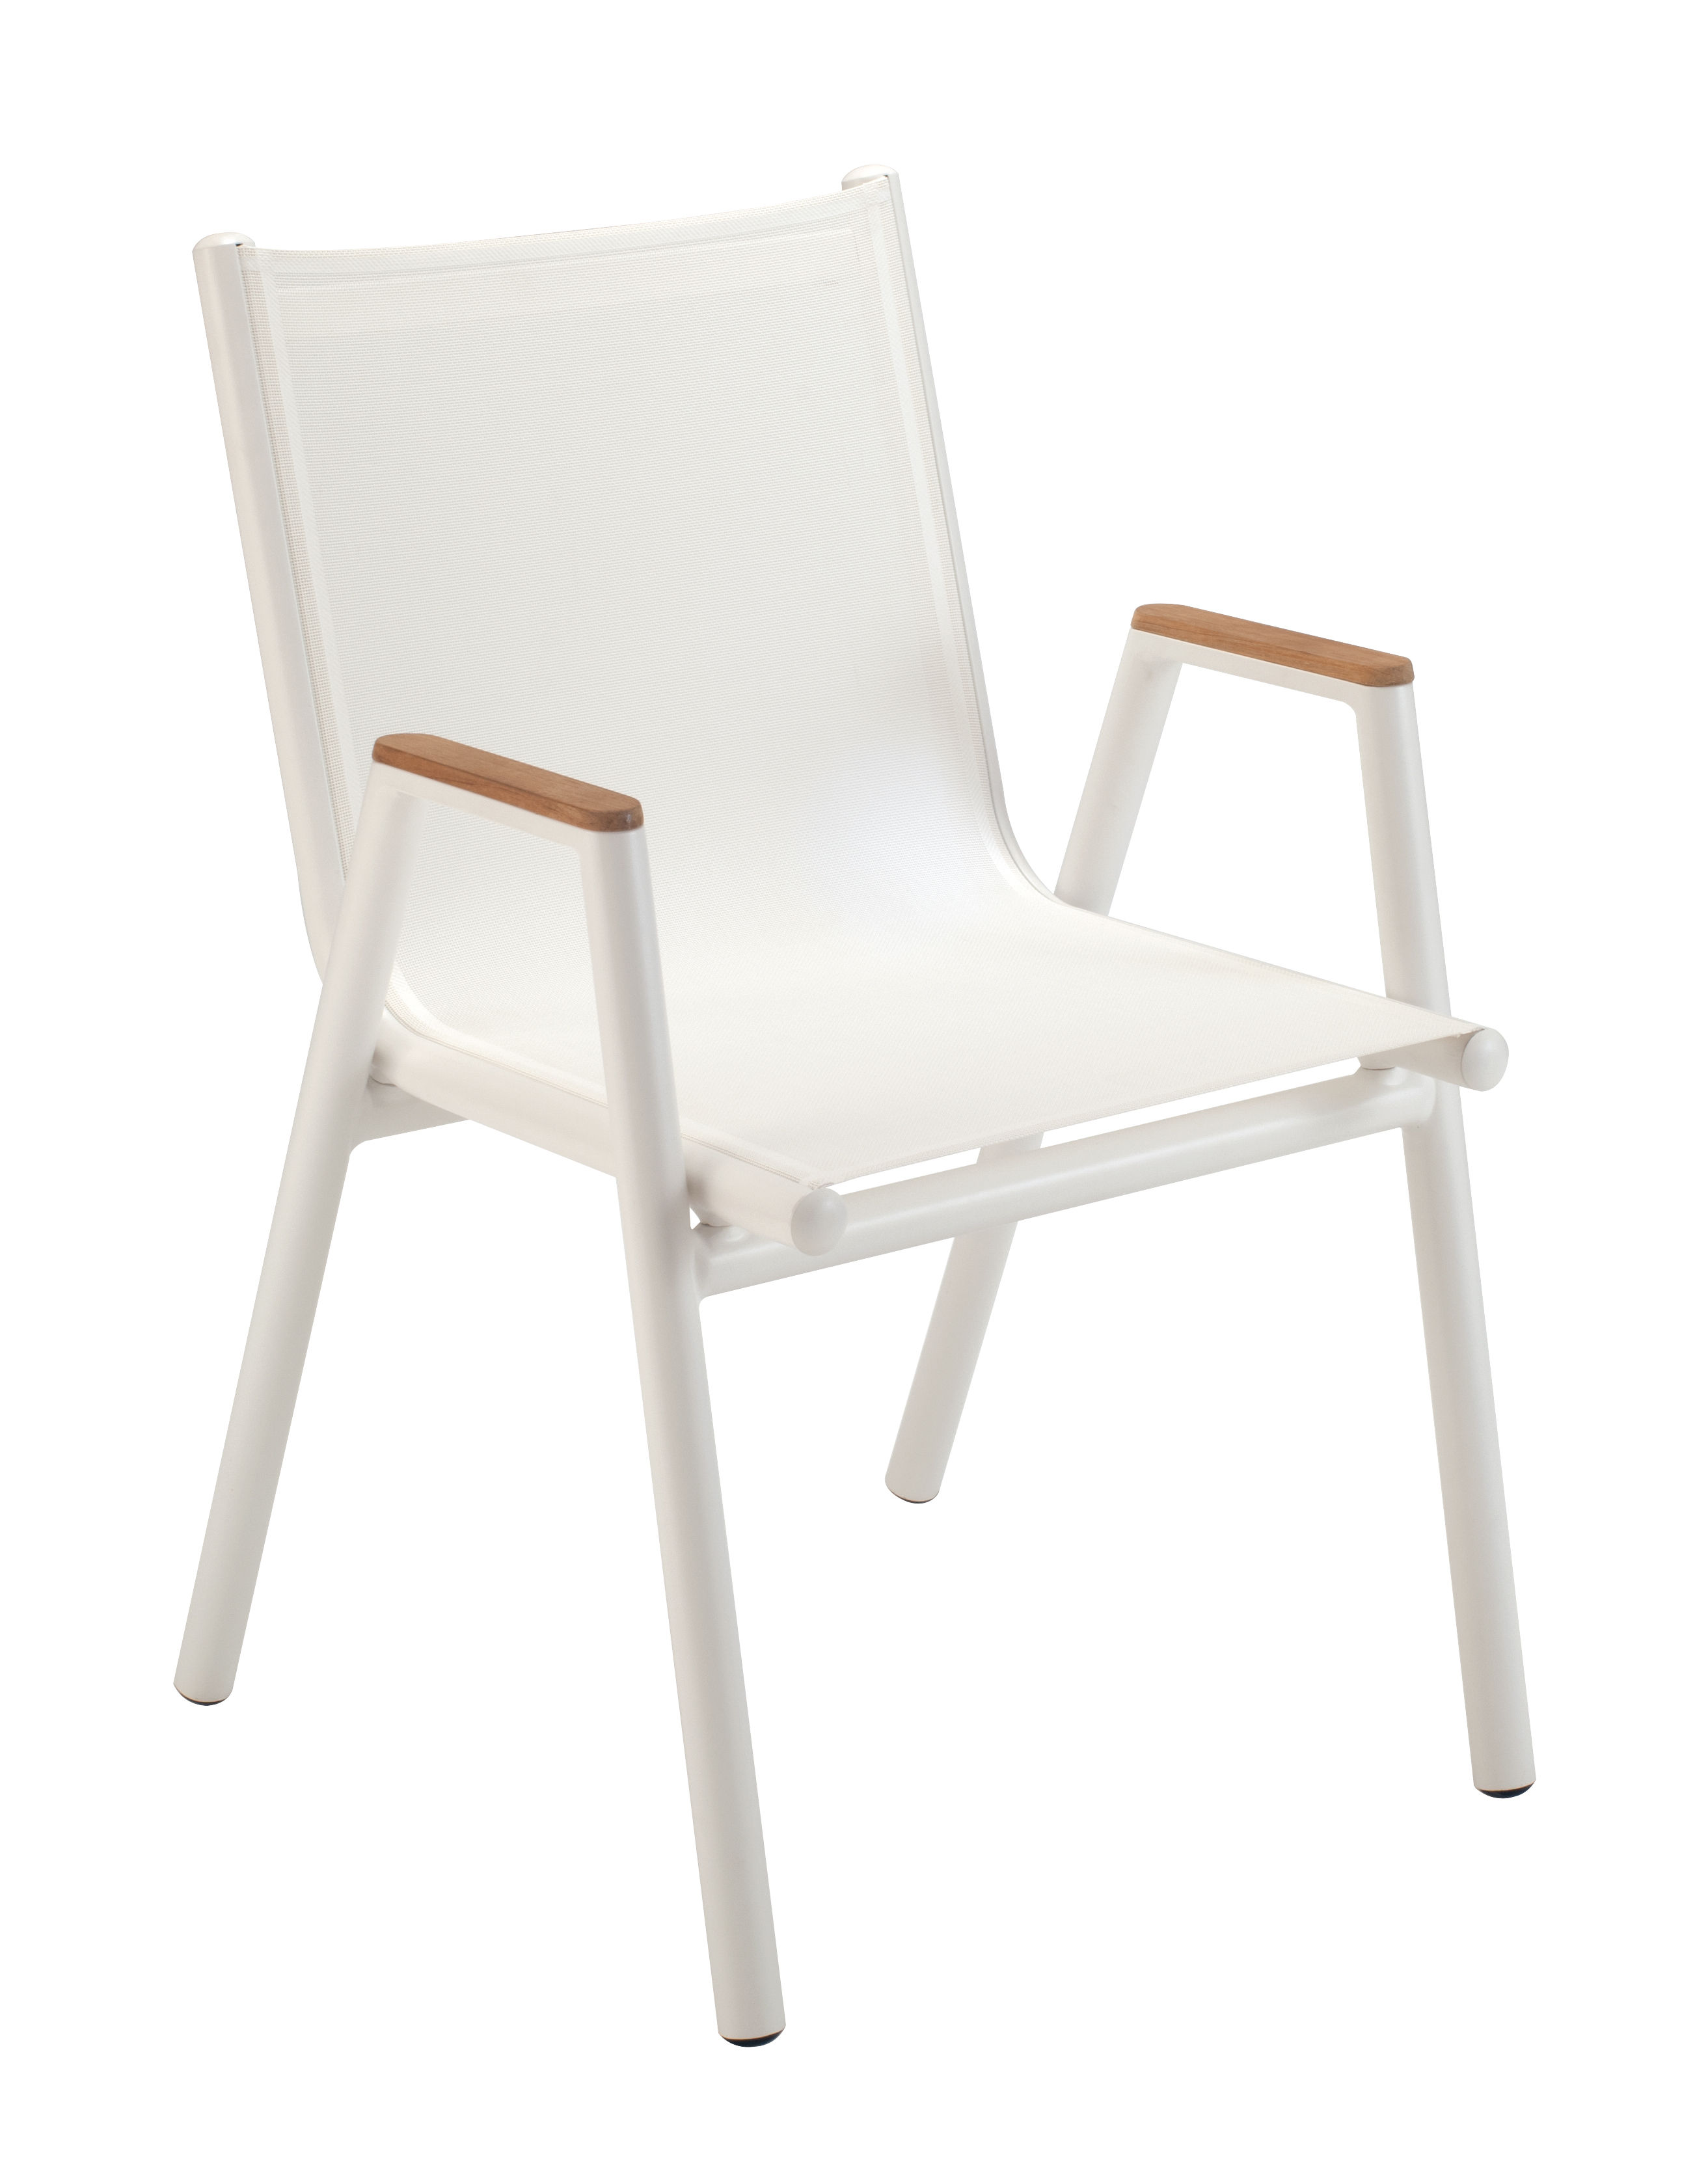 Furniture - Chairs - Pilotis Stackable armchair - Canvas by Vlaemynck - White / Teak armrests - Batyline cloth, Lacquered aluminium, Oiled teak